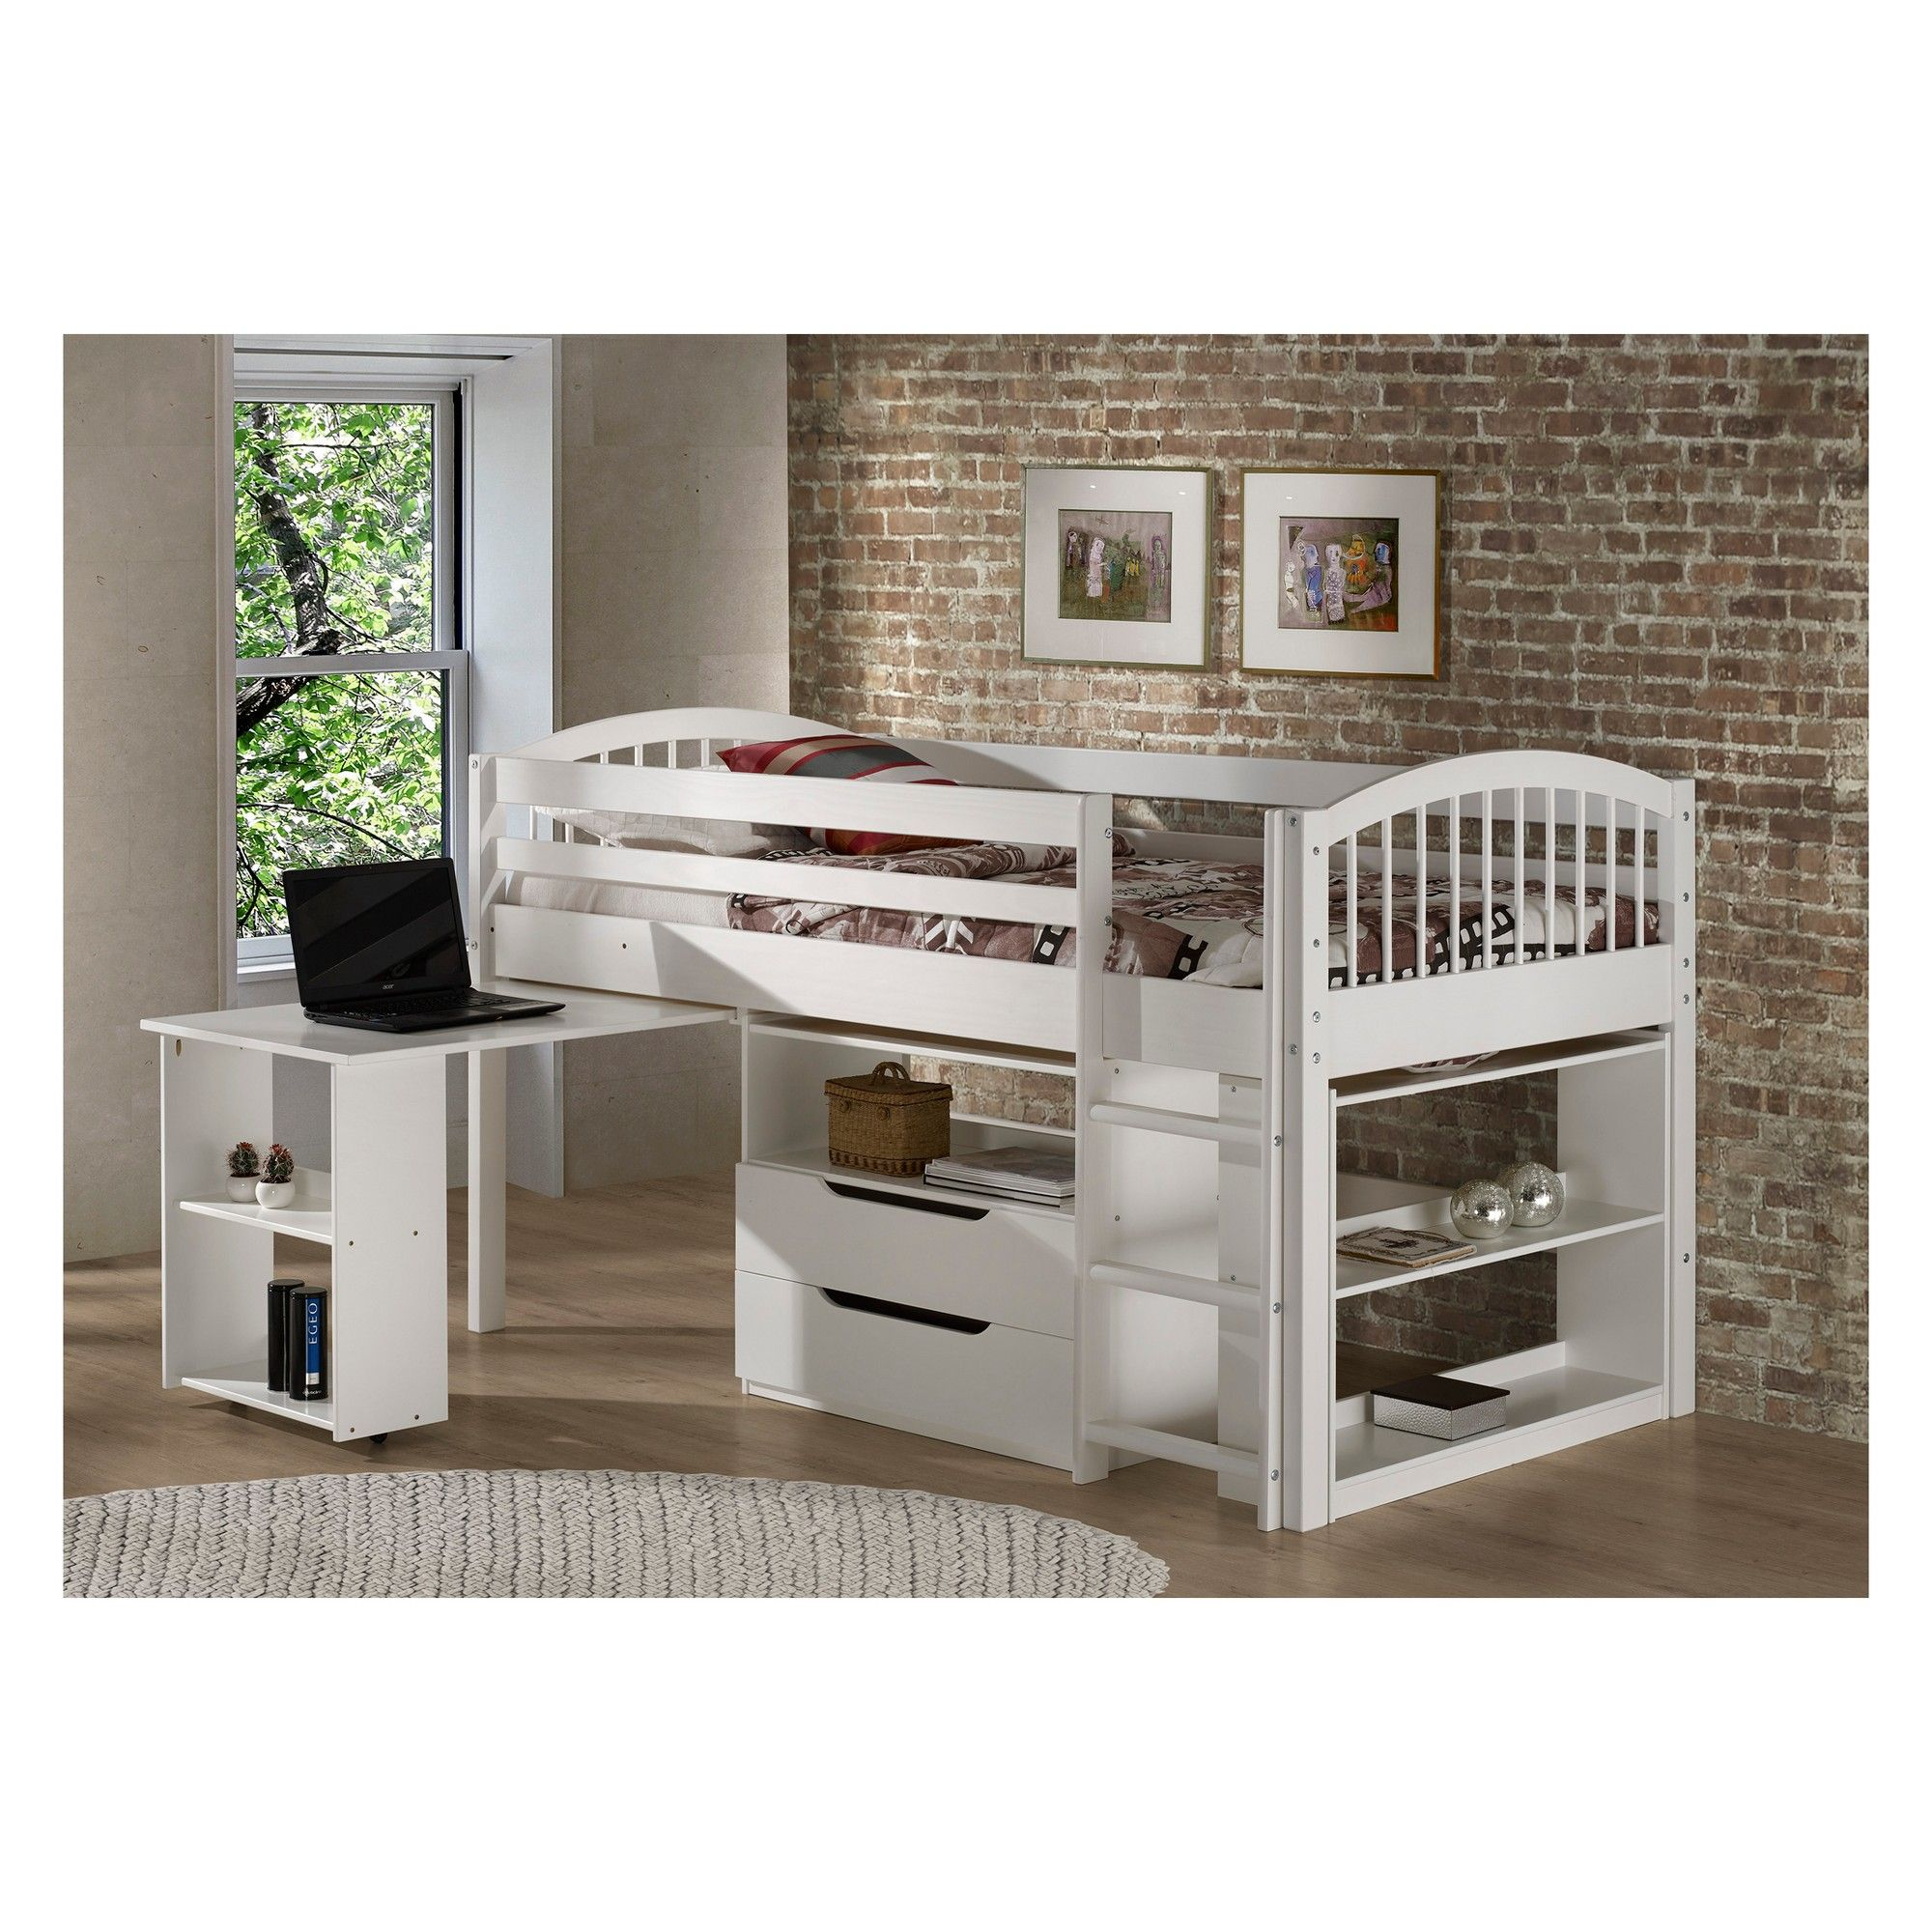 Twin Addison Junior Loft Bed With Storage Drawers Bookshelf And Desk